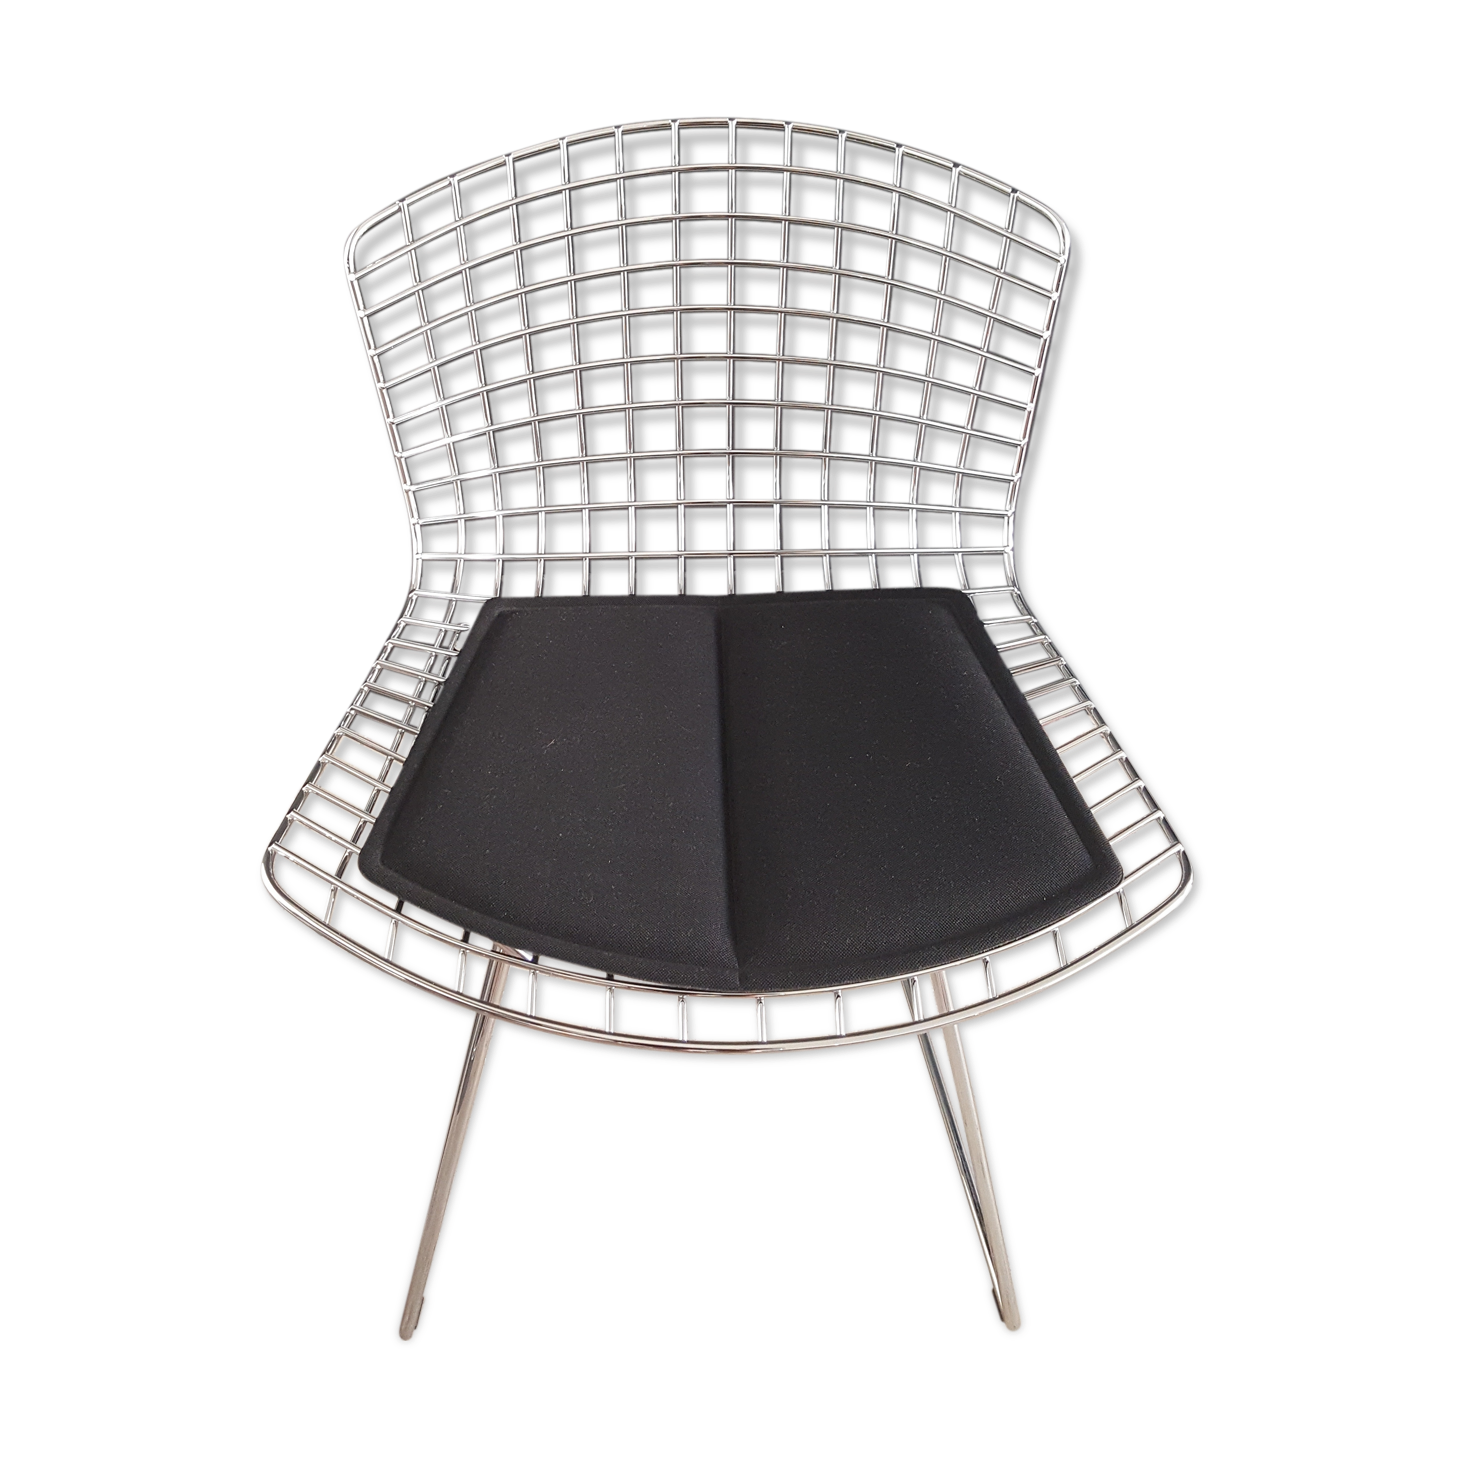 coussin chaise bertoia coussin chaise tulip saarinen chin with coussin chaise bertoia stunning. Black Bedroom Furniture Sets. Home Design Ideas